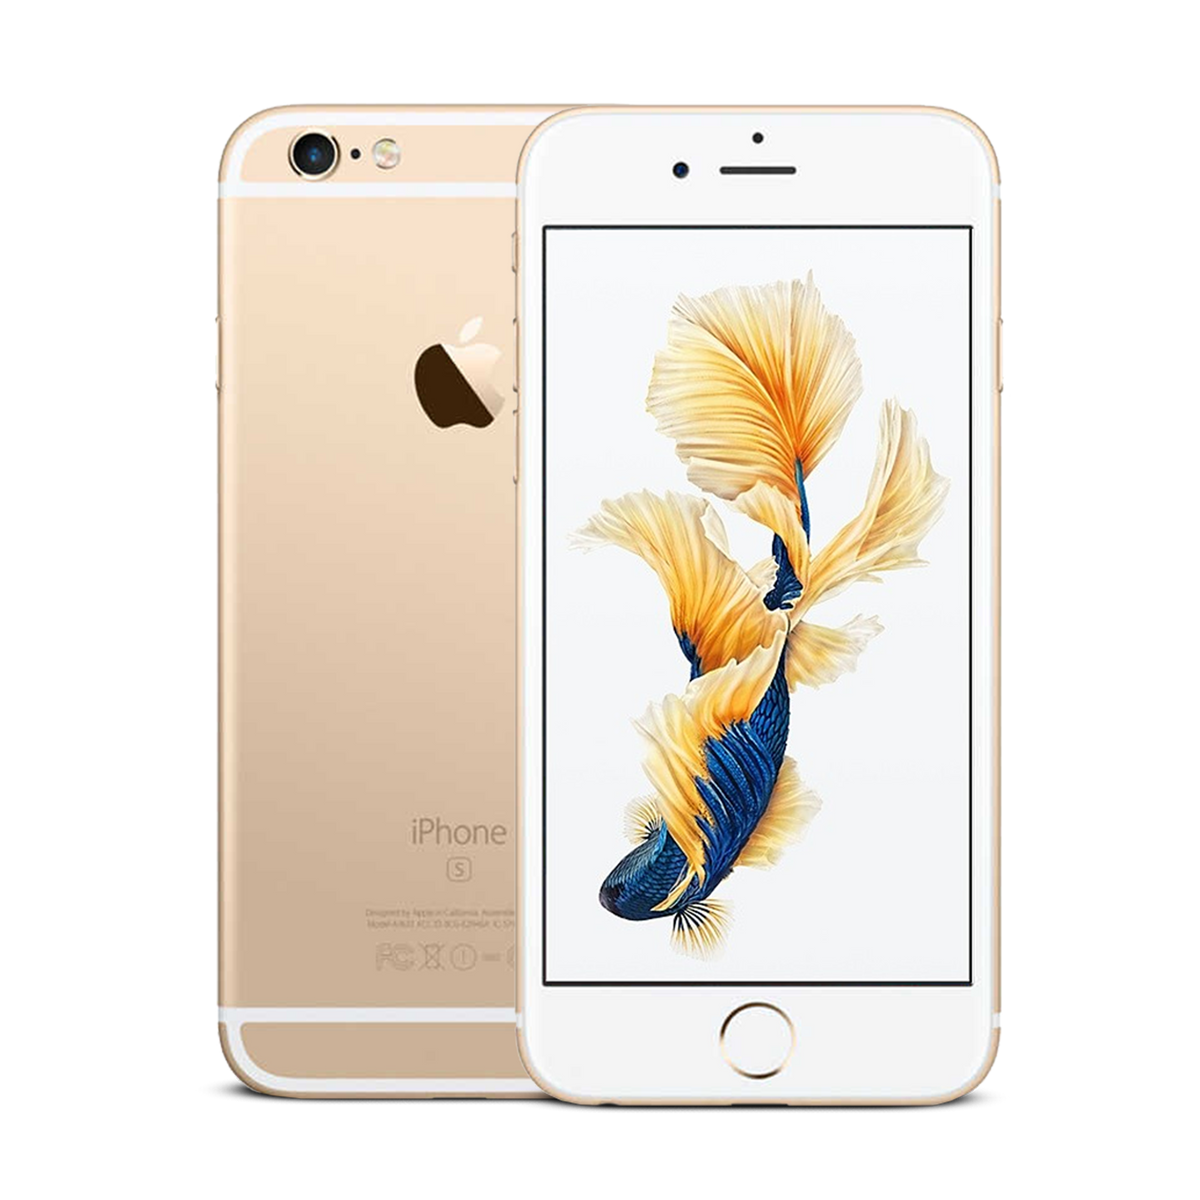 iPhone 6s 32GB Gold - Condition Very Good